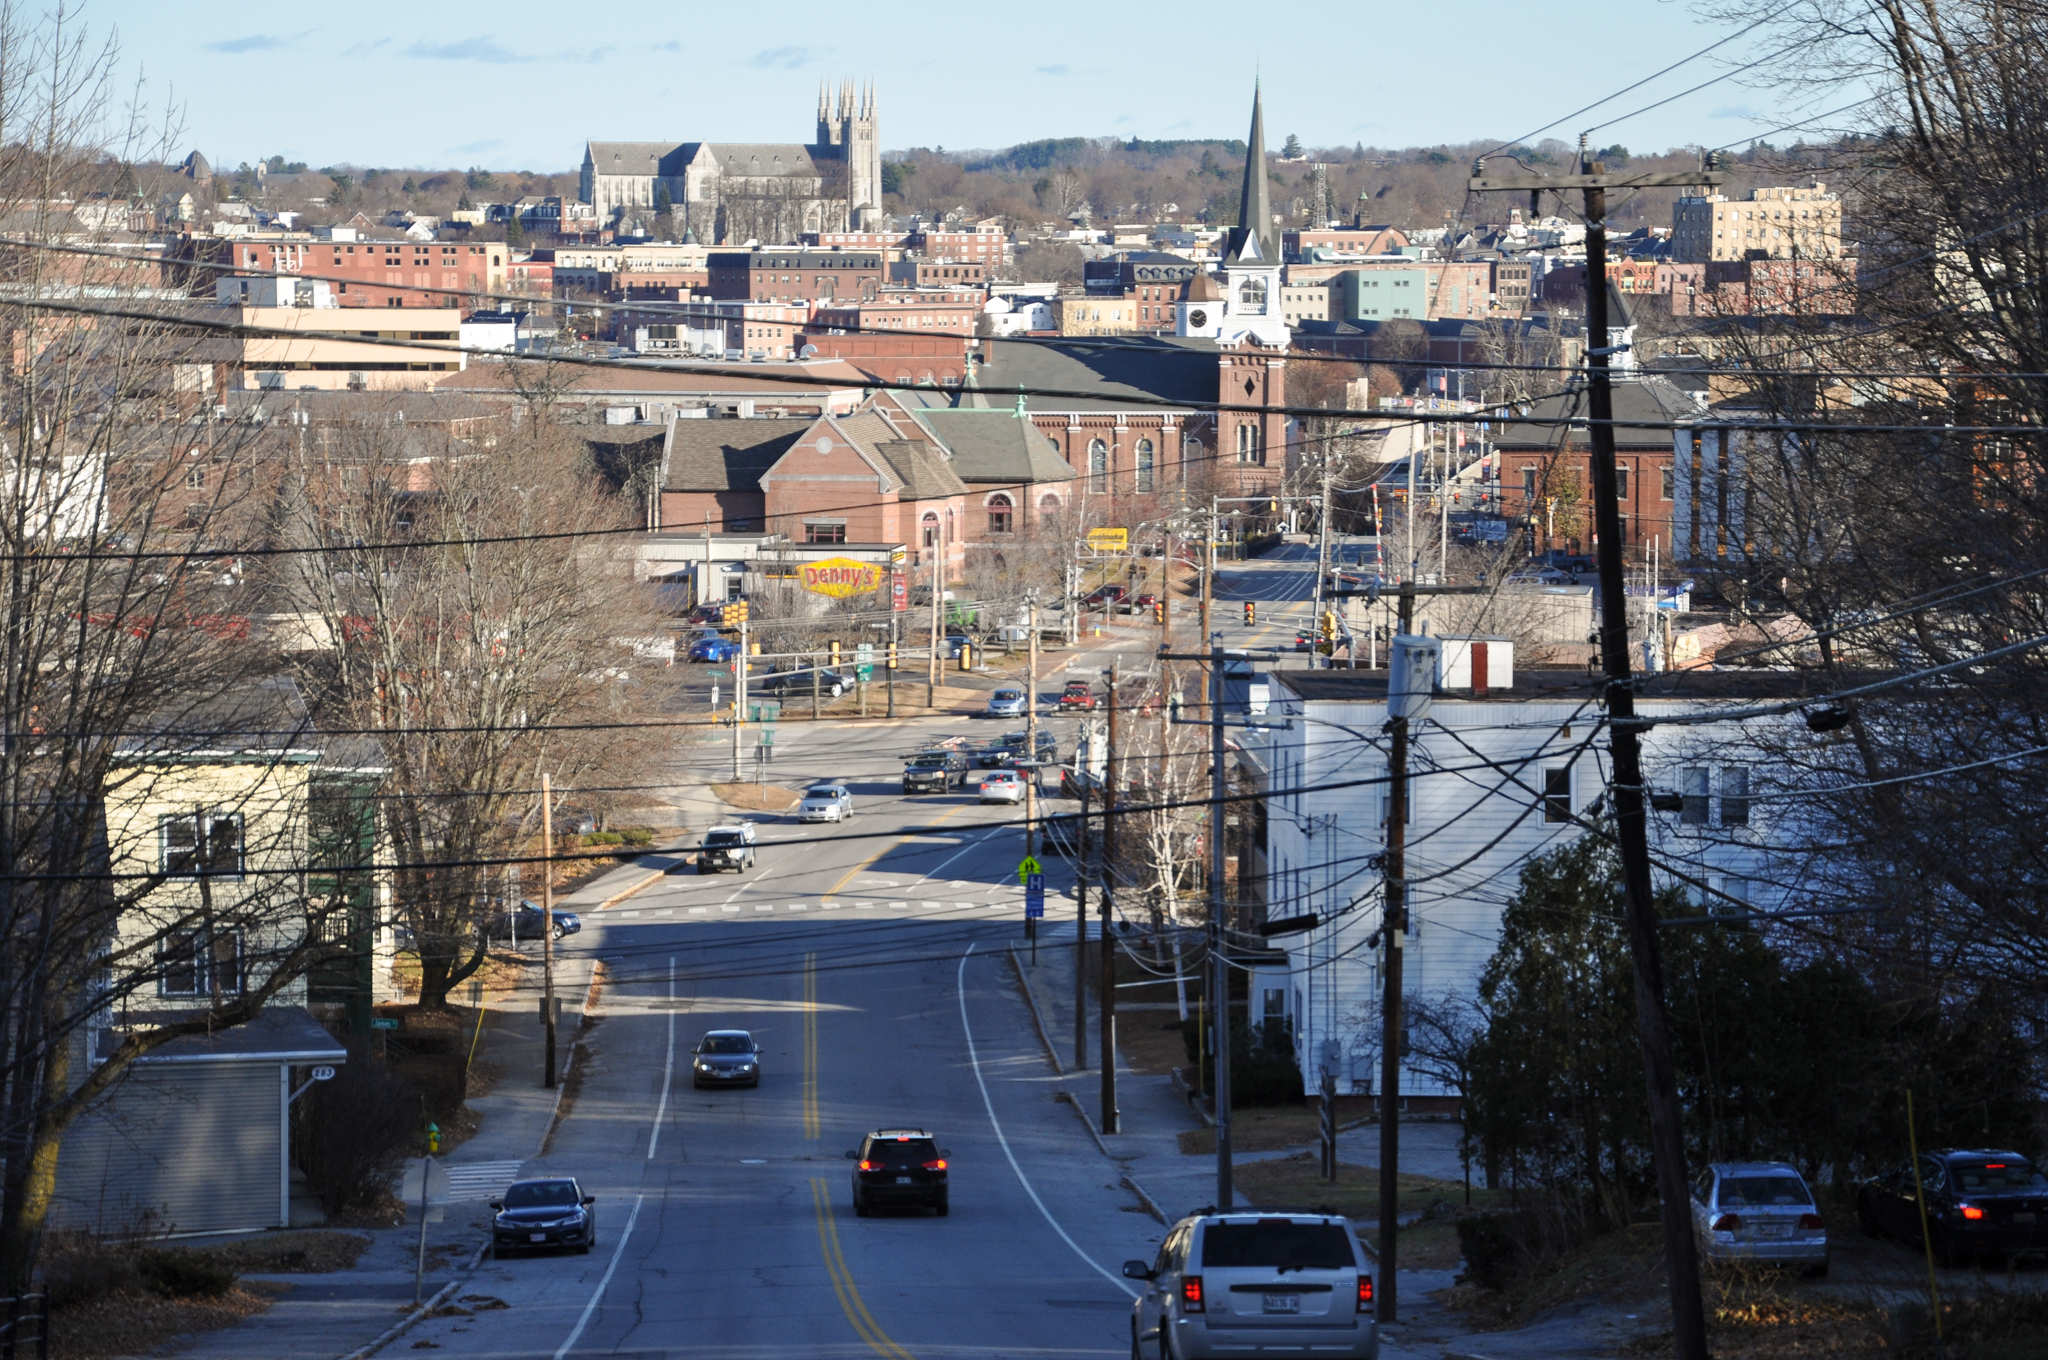 Picture of Court Street in Auburn Maine with the skyline of Lewiston Maine visible in the background